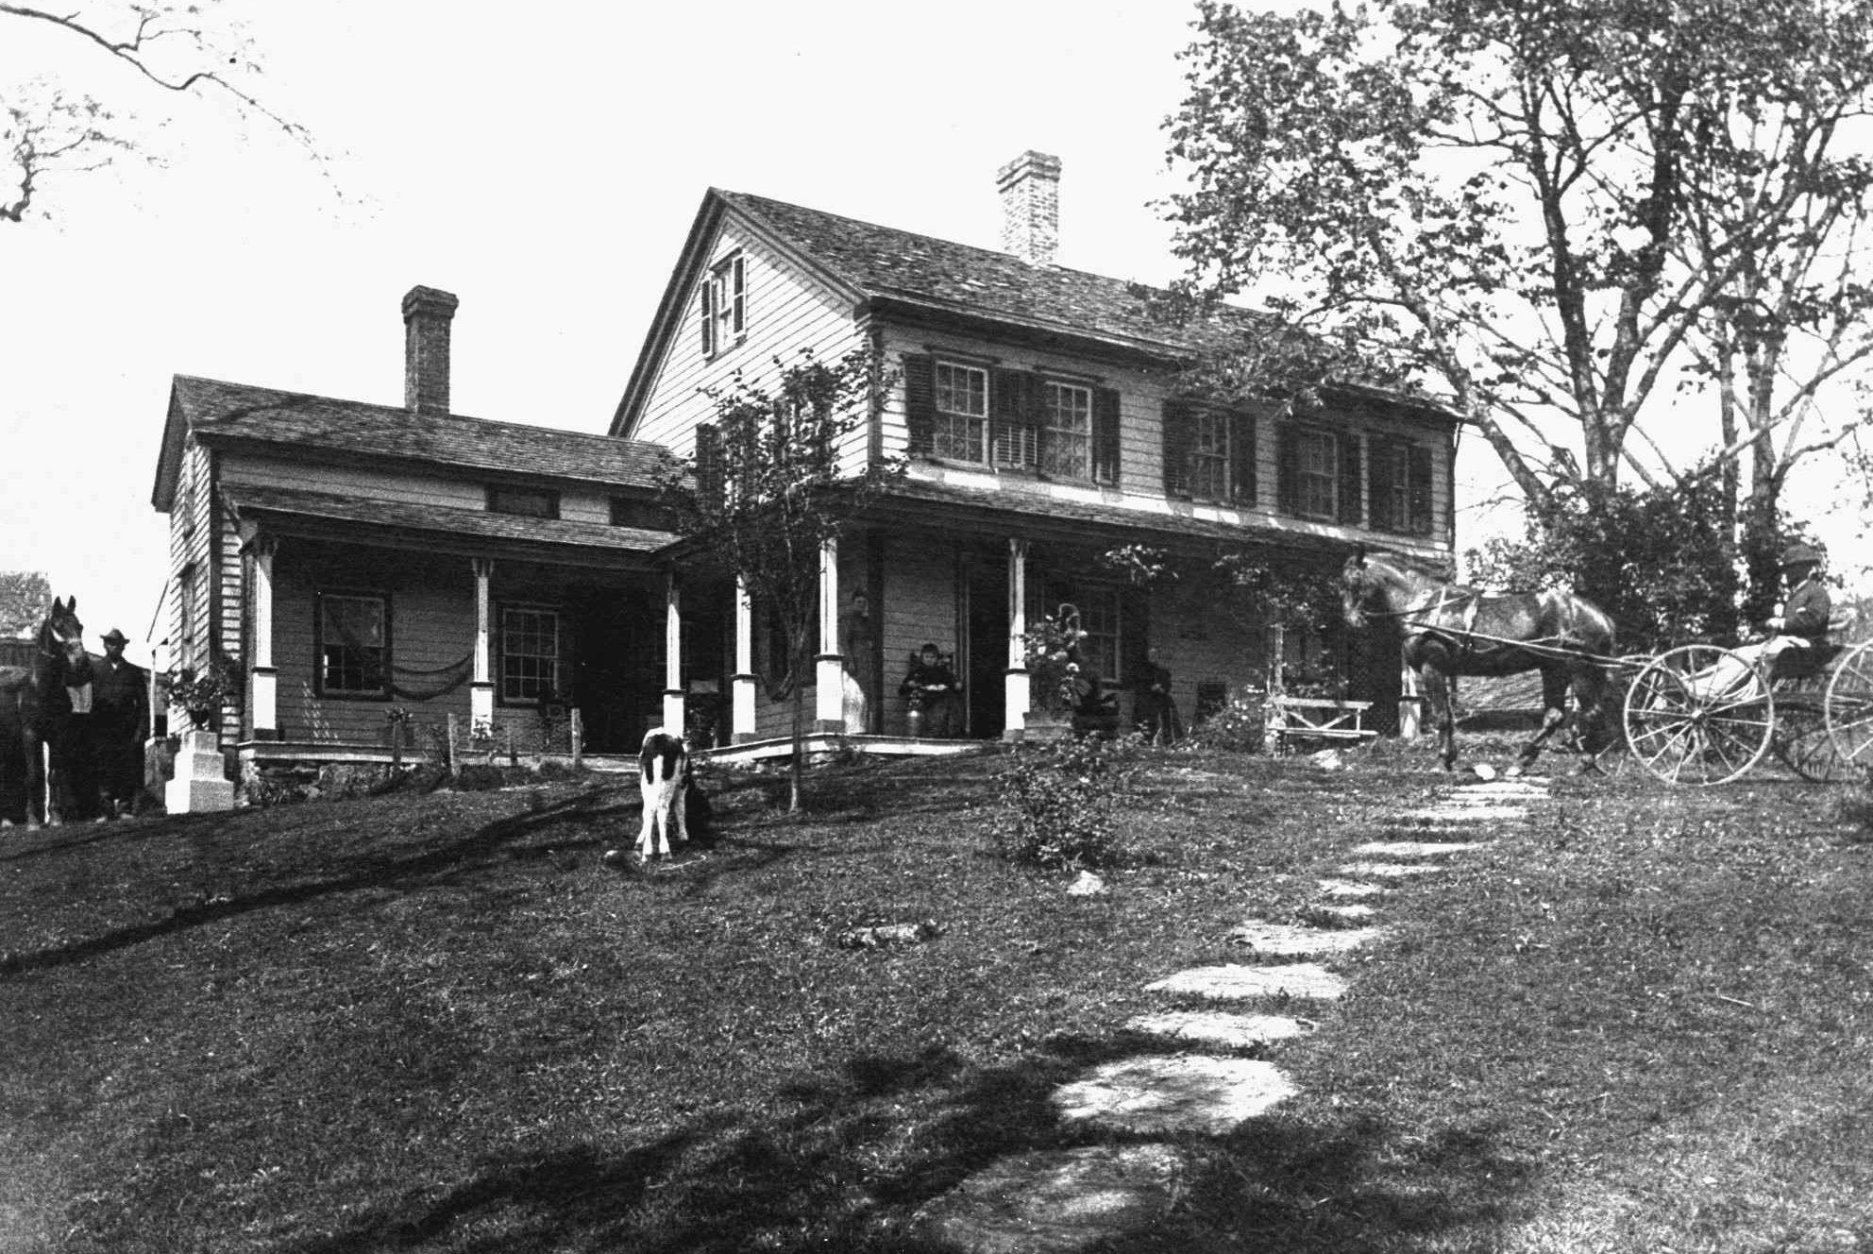 The Joseph Hurlbutt house, built circa.1780 in Wilton , Ct. and shown in this1894 photo, served as a underground railroad depot. Fugitive slaves escaped through the trapdoor in the floor of the living room and a stairway led to a four-by-five-foot tunnel in the basement that ended 50 feet from the house allowing slaves to escape at night undetected. Under the National Underground Railroad Network to Freedom Act, signed into law last month by President Clinton, the National Park Service is authorized tospend $500,000 a year to link the sites of the Underground Railroad into a network and produce educational materials. (AP Photo/Wilton Historical Society, File)